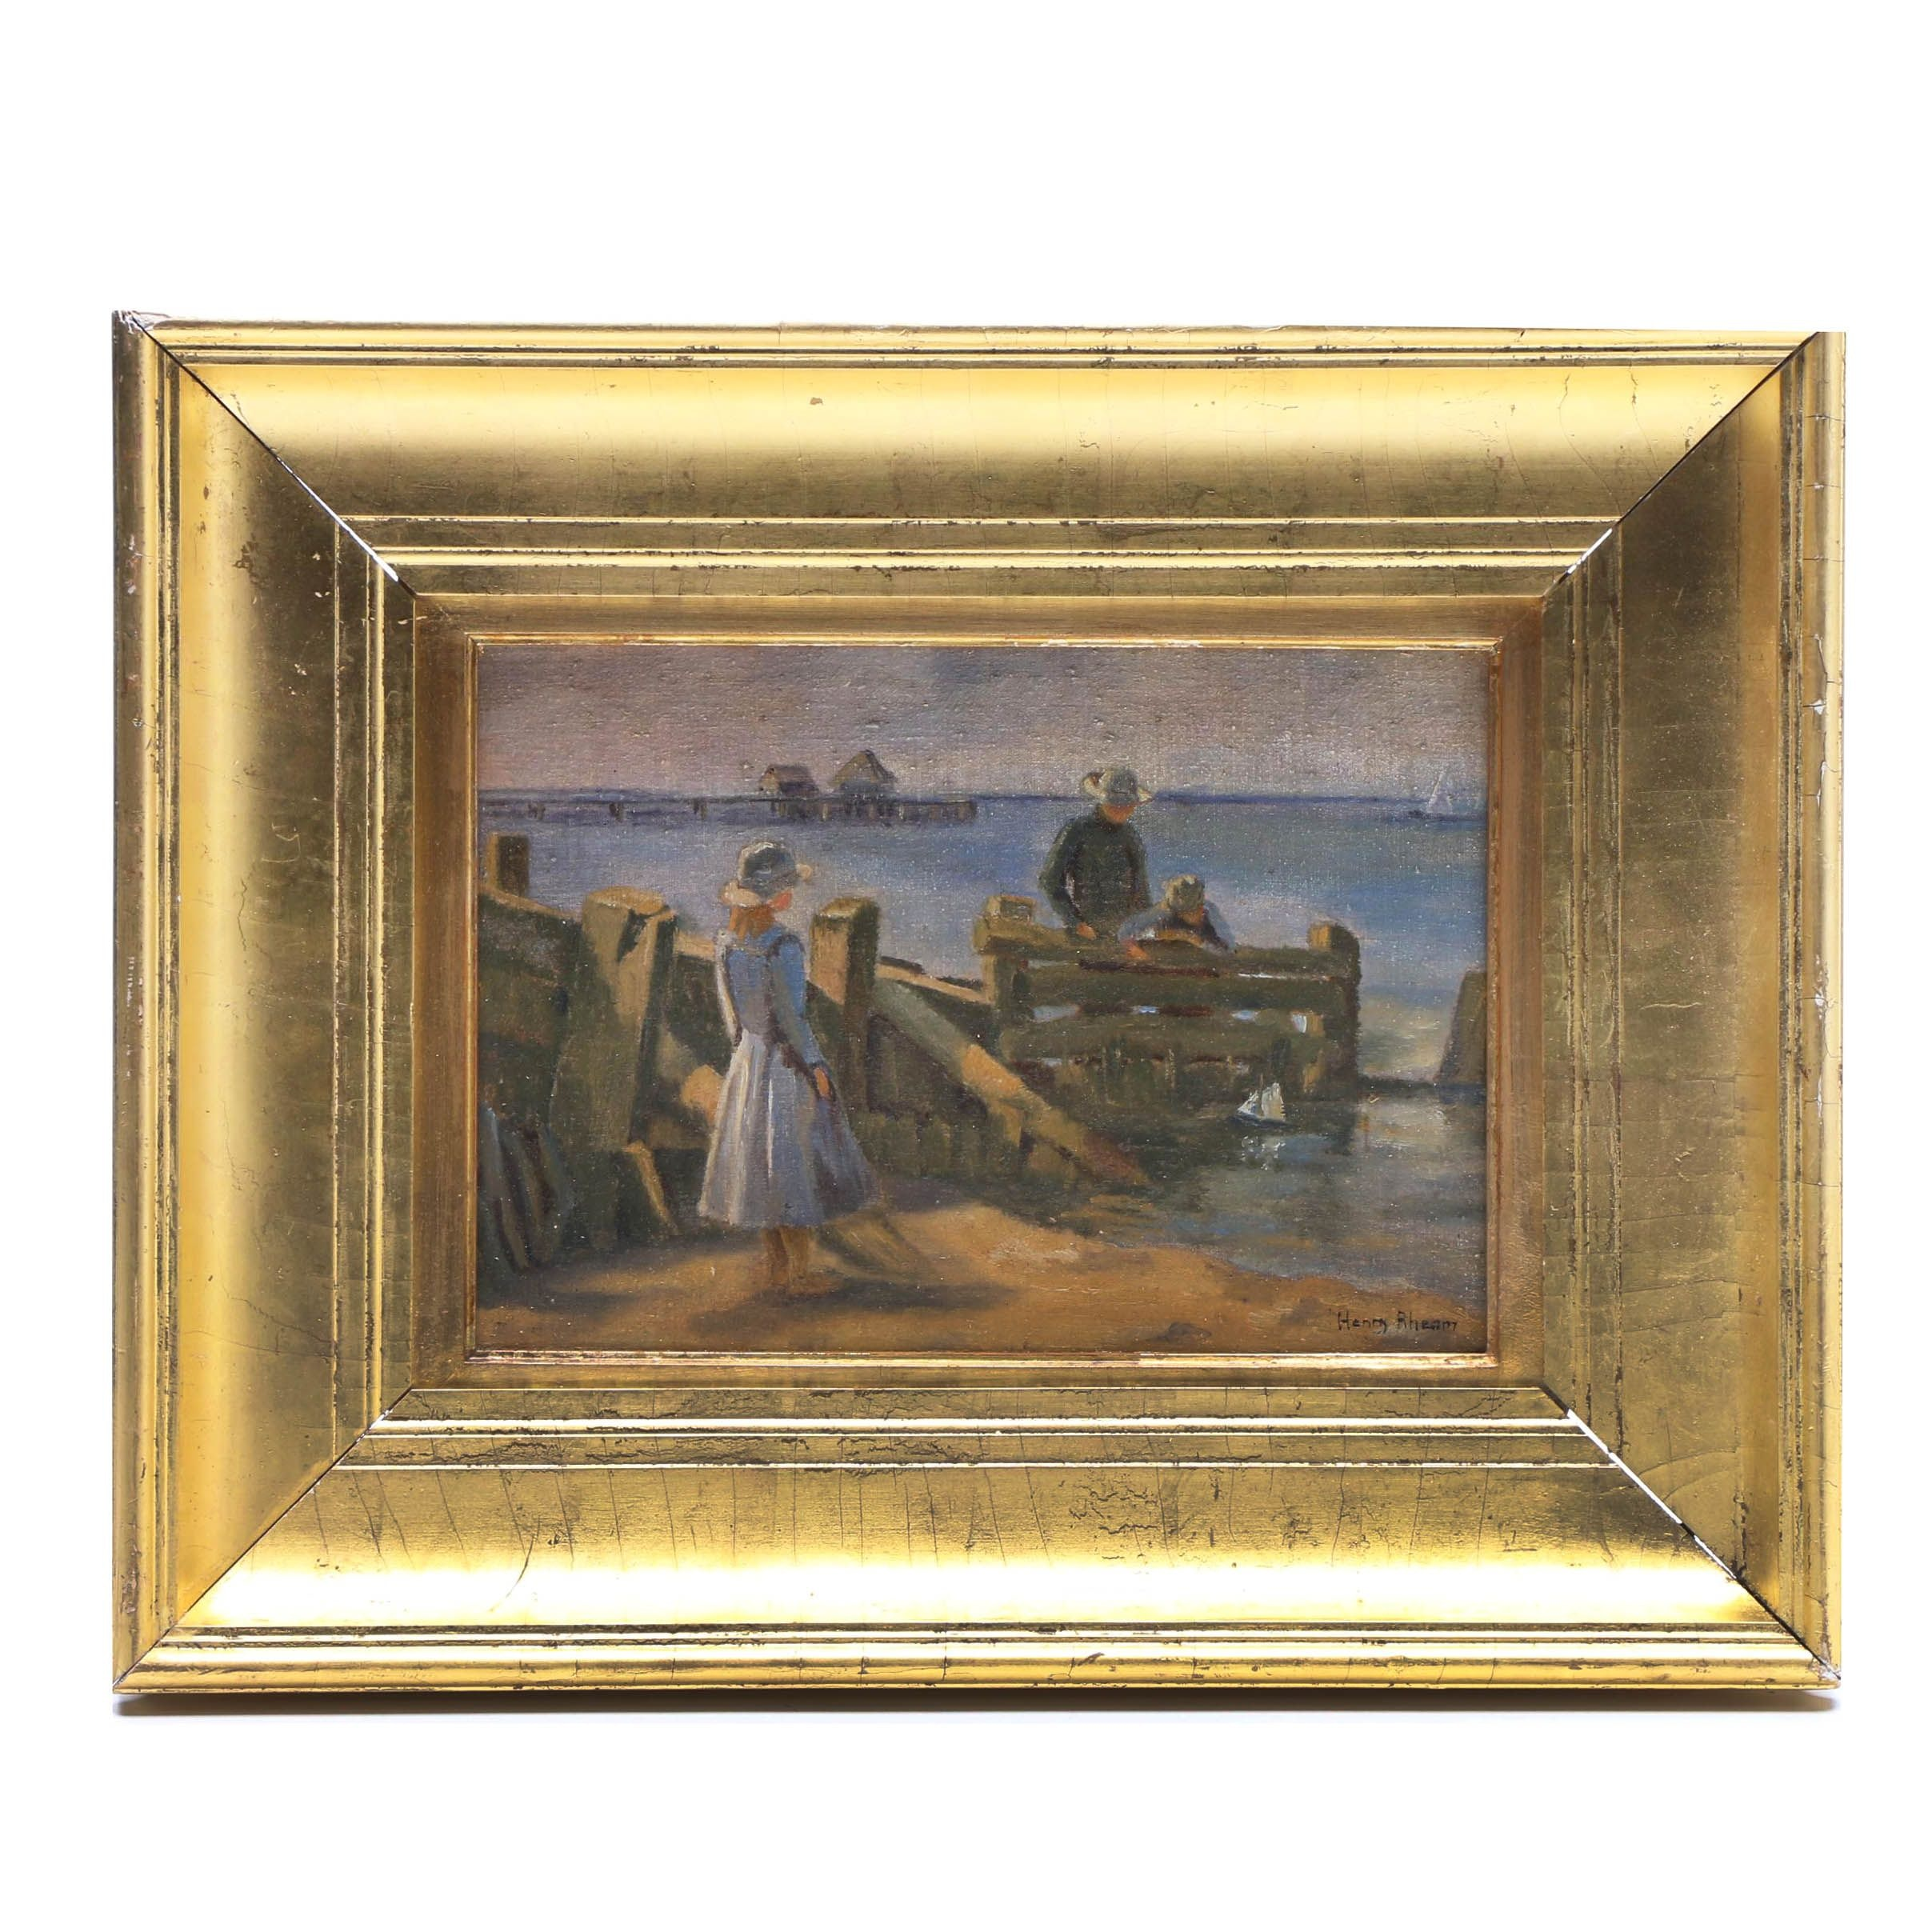 Henry Rheam Oil Painting of Coastal Scene with Figures